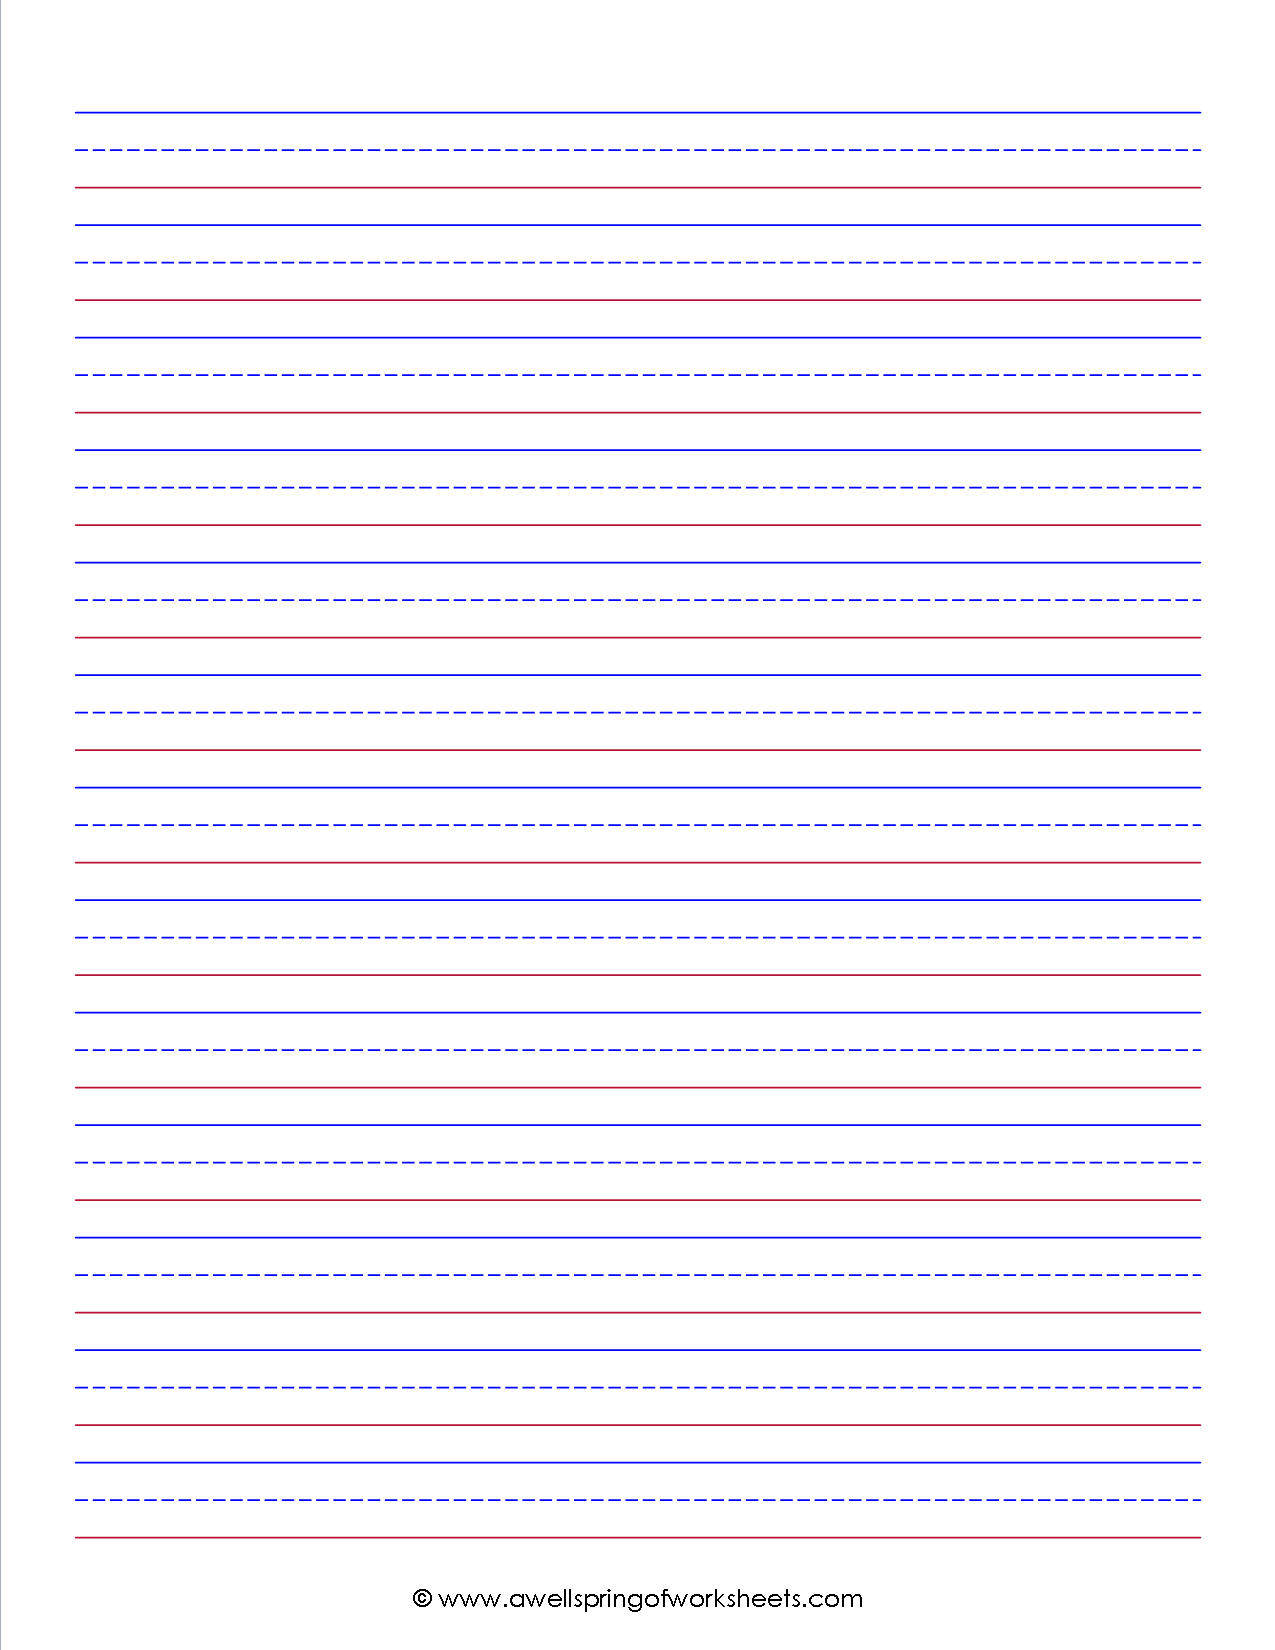 free writing paper printable kids stationery primary lined writing